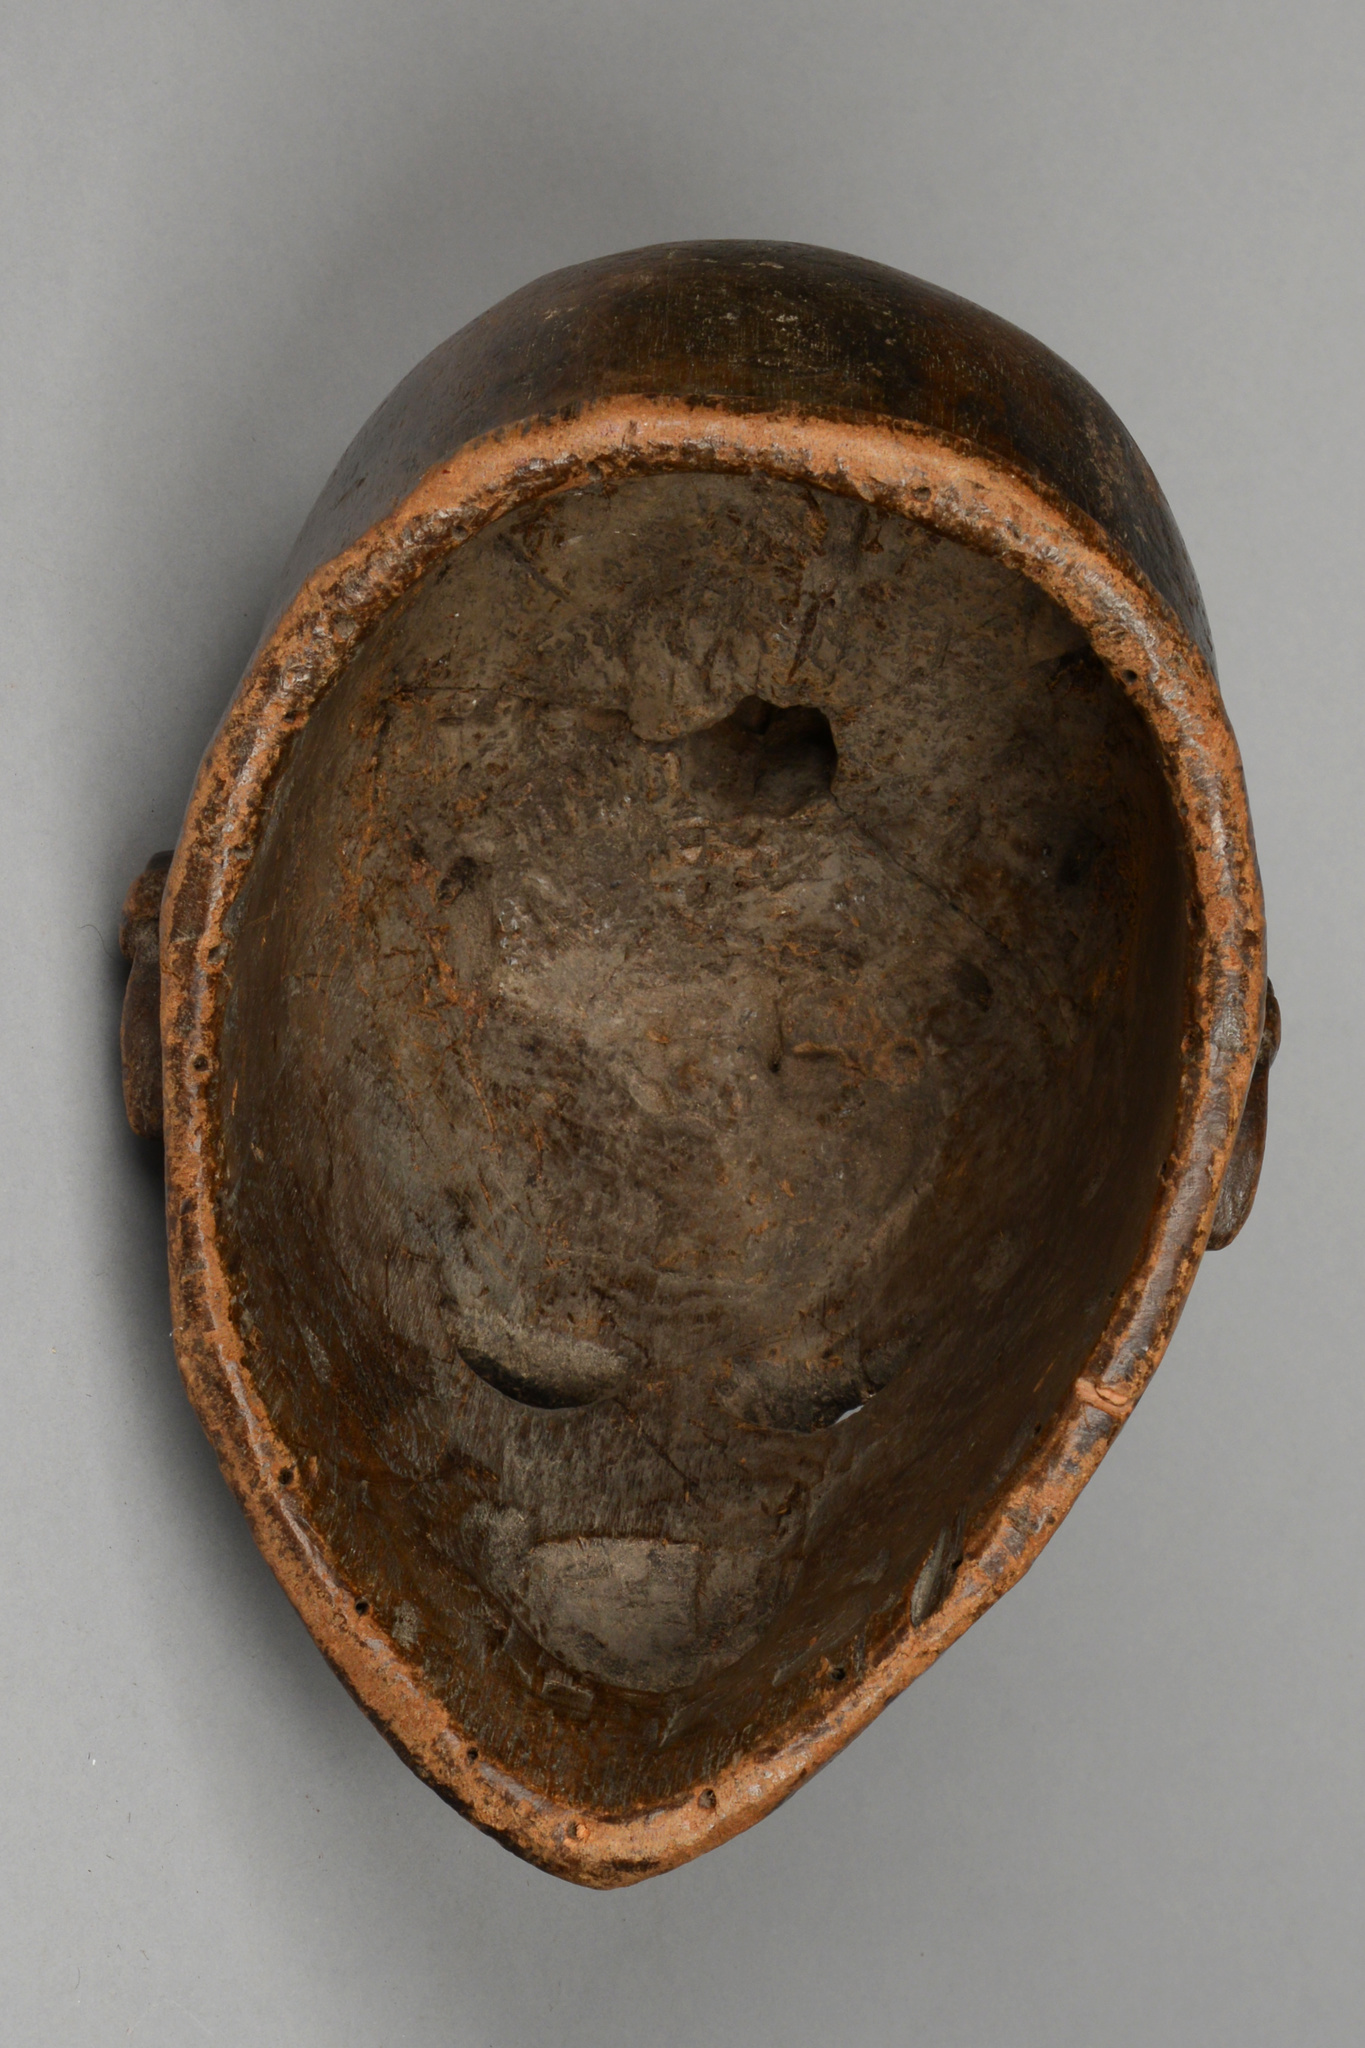 Anthropomorphic helmet mask